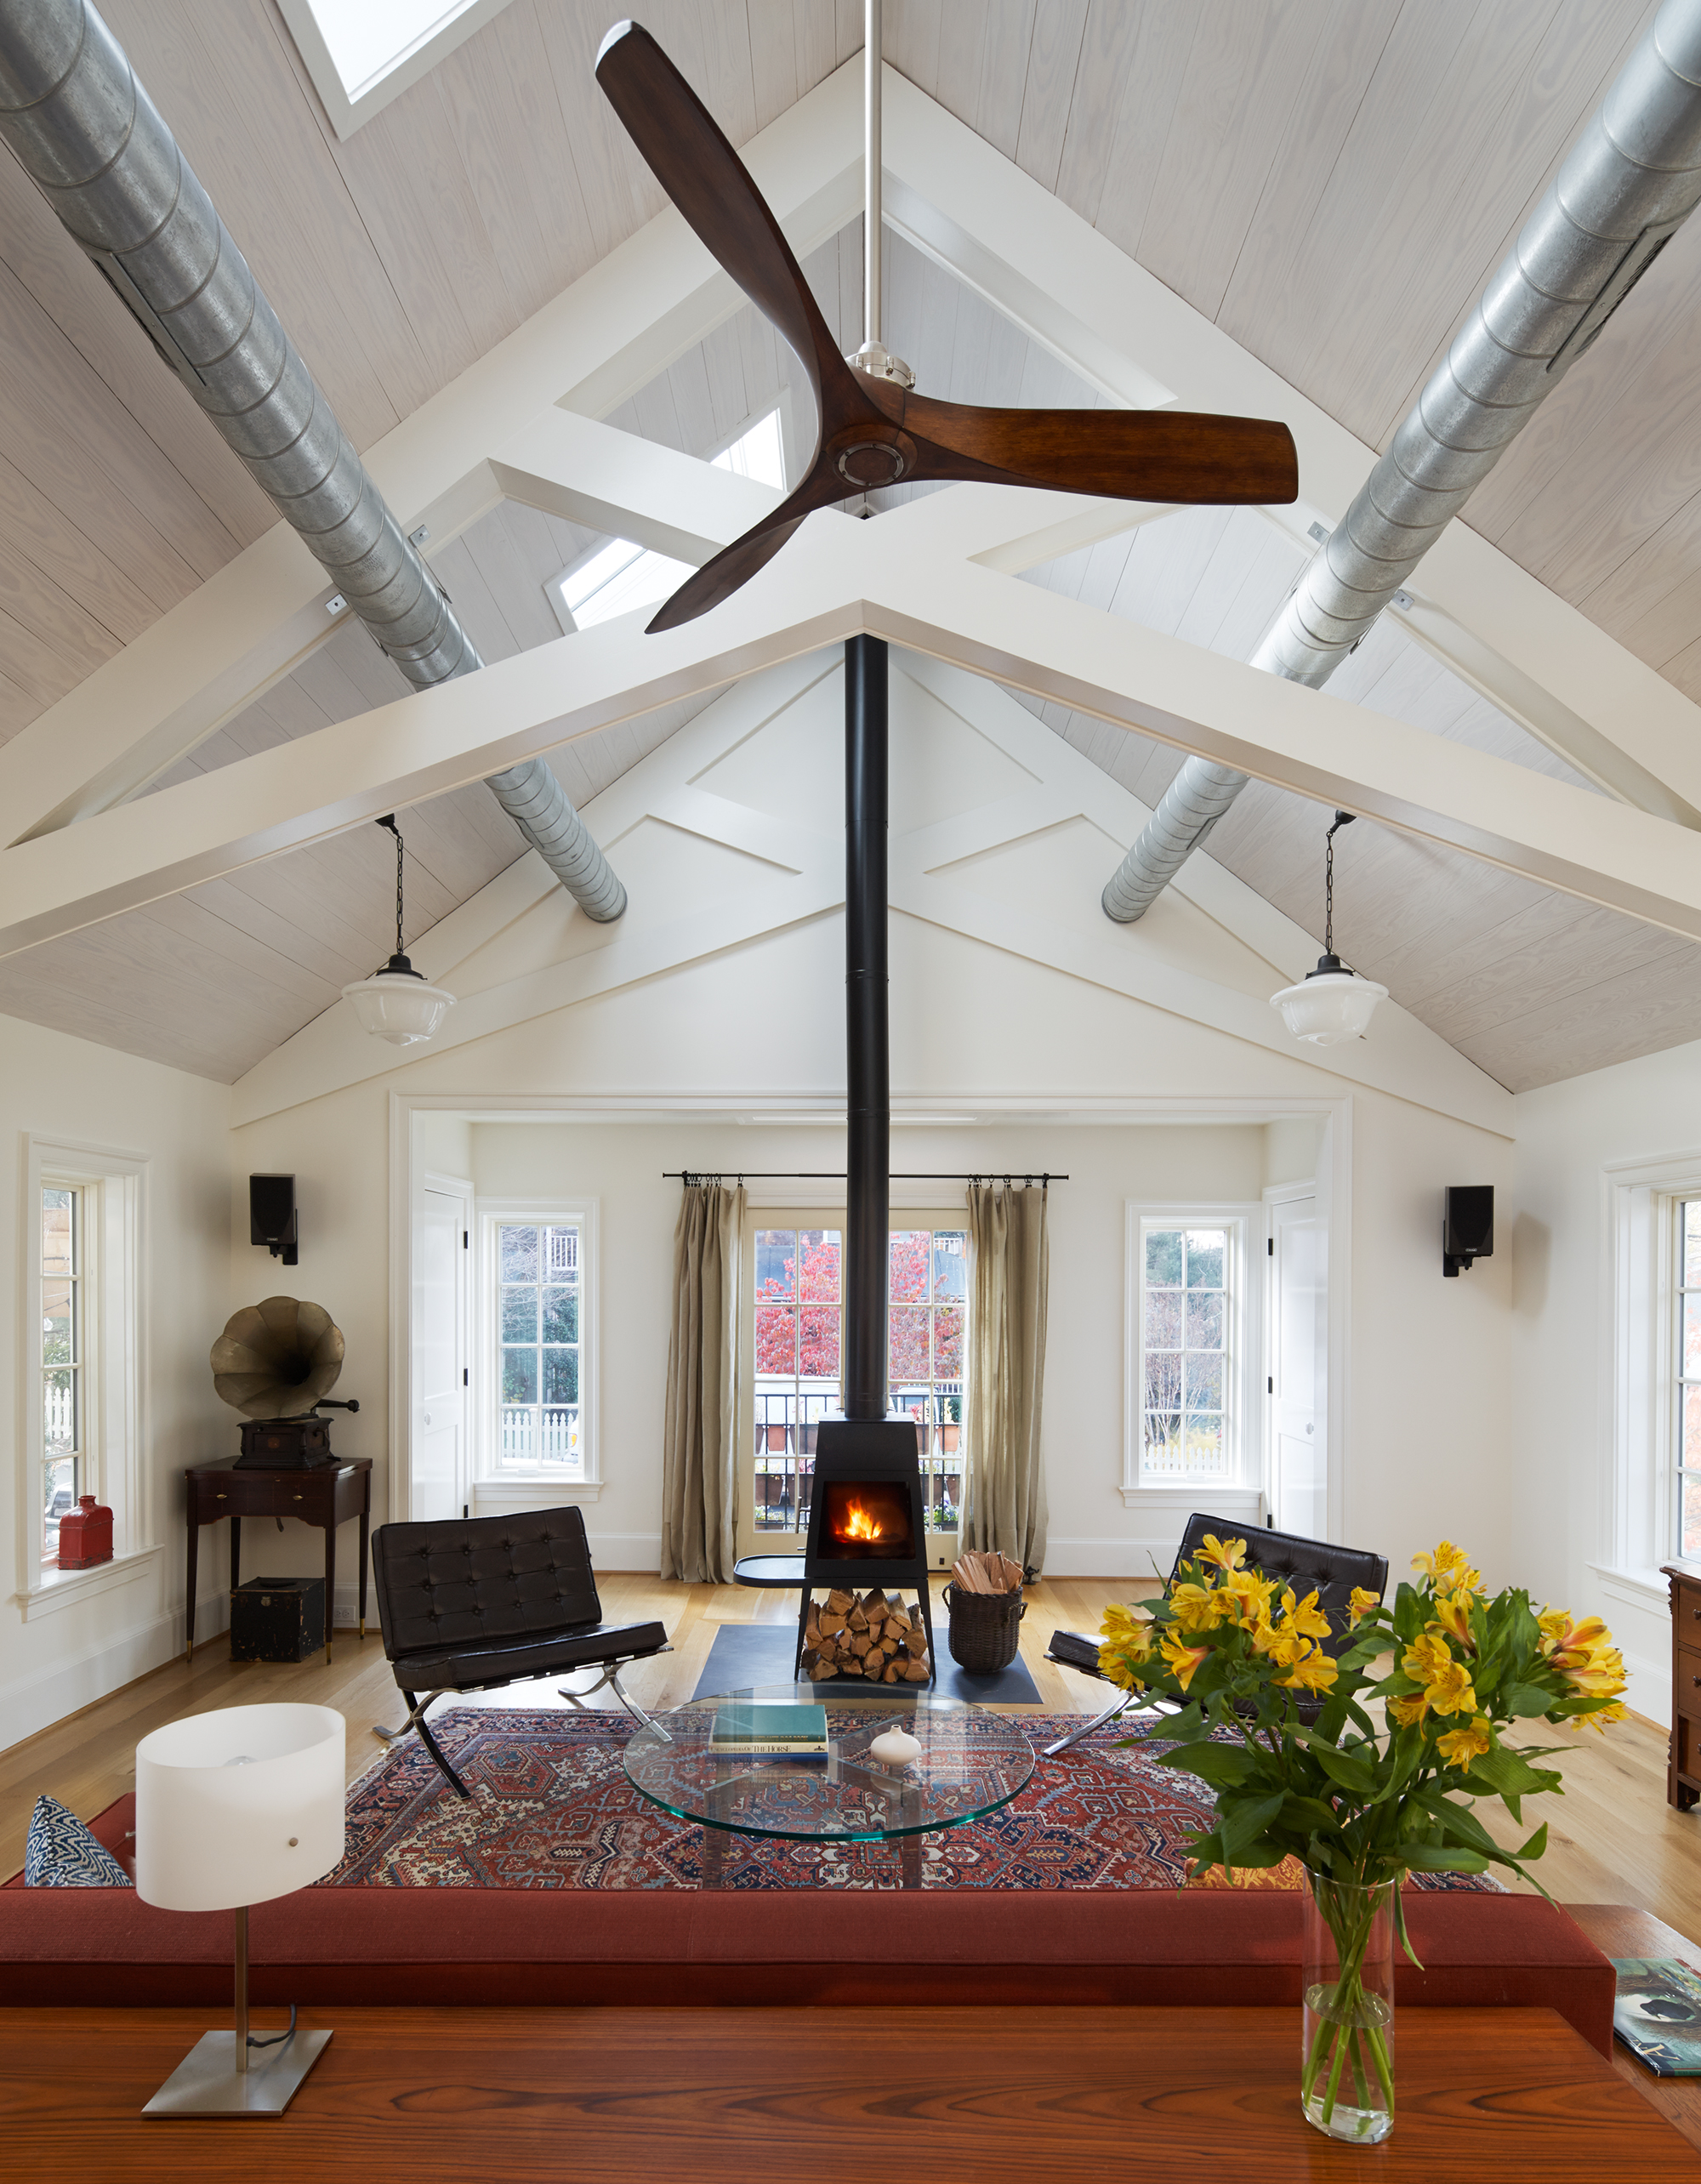 Of all the cool details, homeowner Aaron Hirsch says the Minka Aire ceiling fan draws the most compliments.